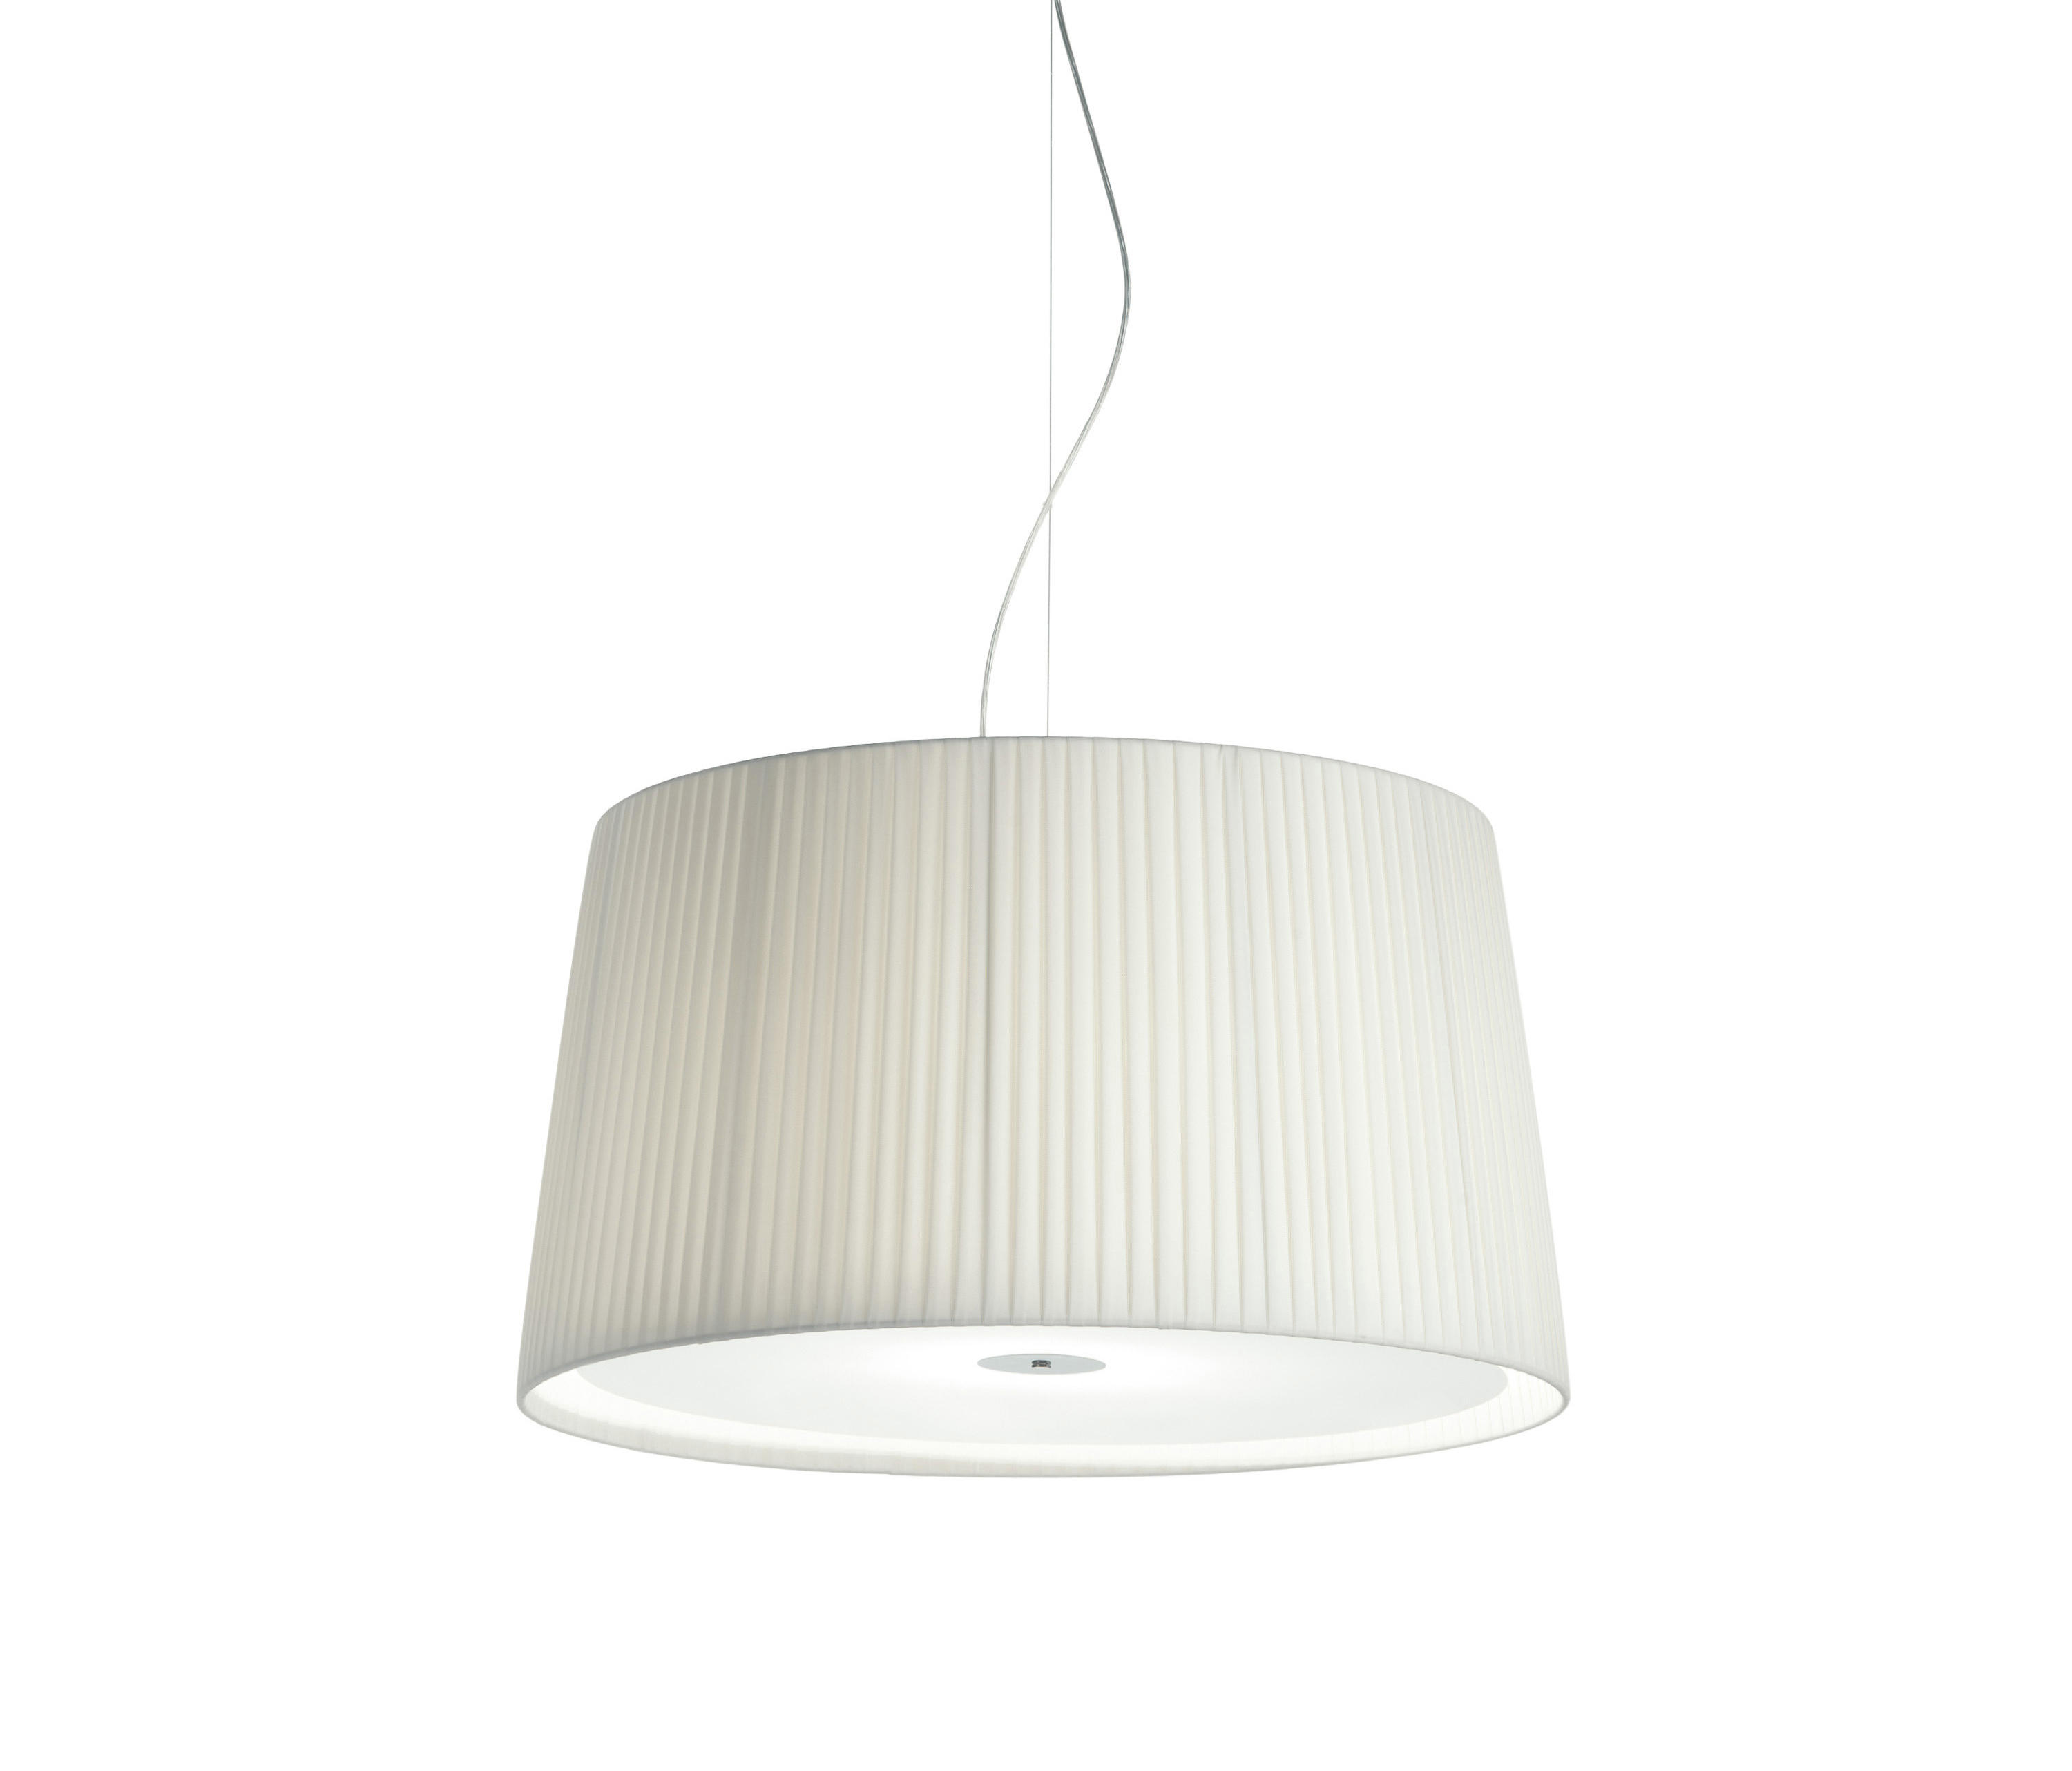 Milleluci Suspended Lights From Modo Luce Architonic